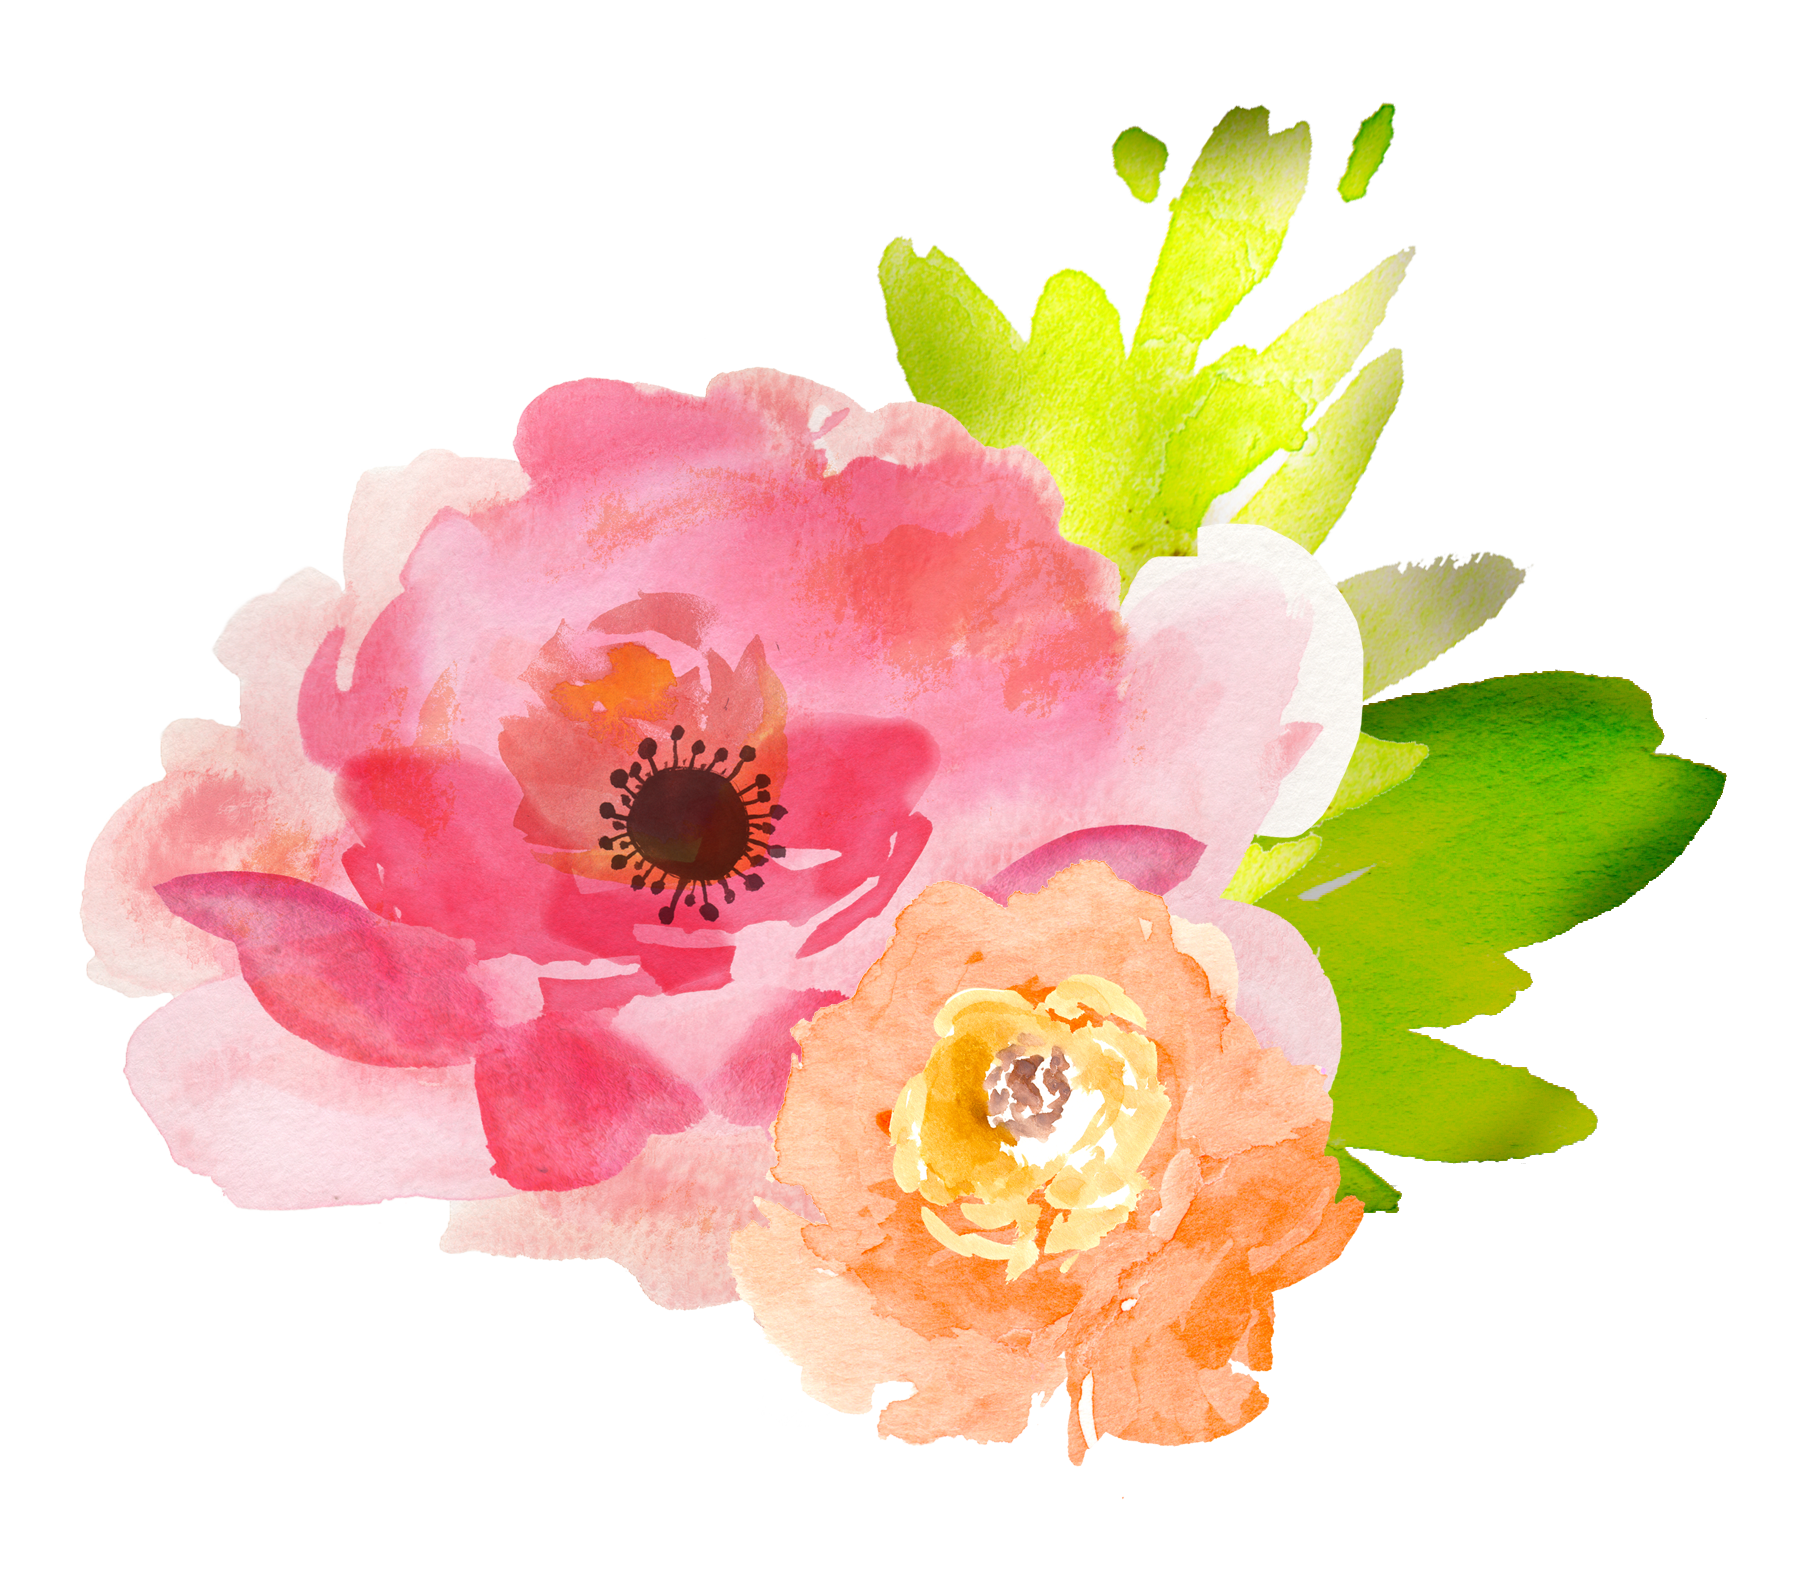 Pink watercolor flower png. Watercolour flowers painting floral